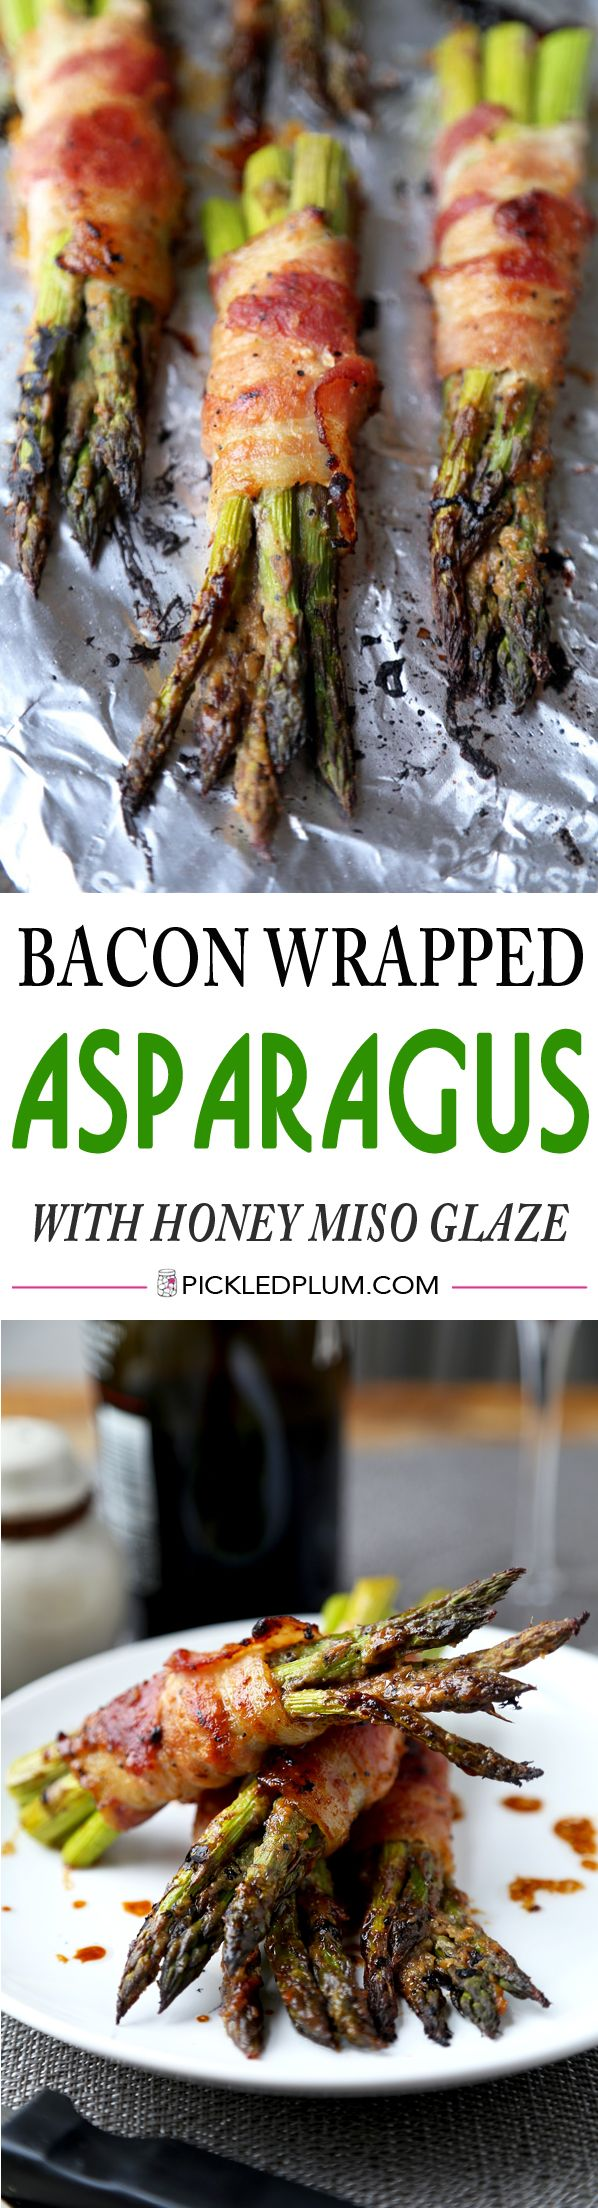 A healthy and delicious bacon recipe! Bacon wrapped asparagus with honey miso glaze - gluten free too! http://www.pickledplum.com/bacon-wrapped-asparagus-miso-glaze-recipe/